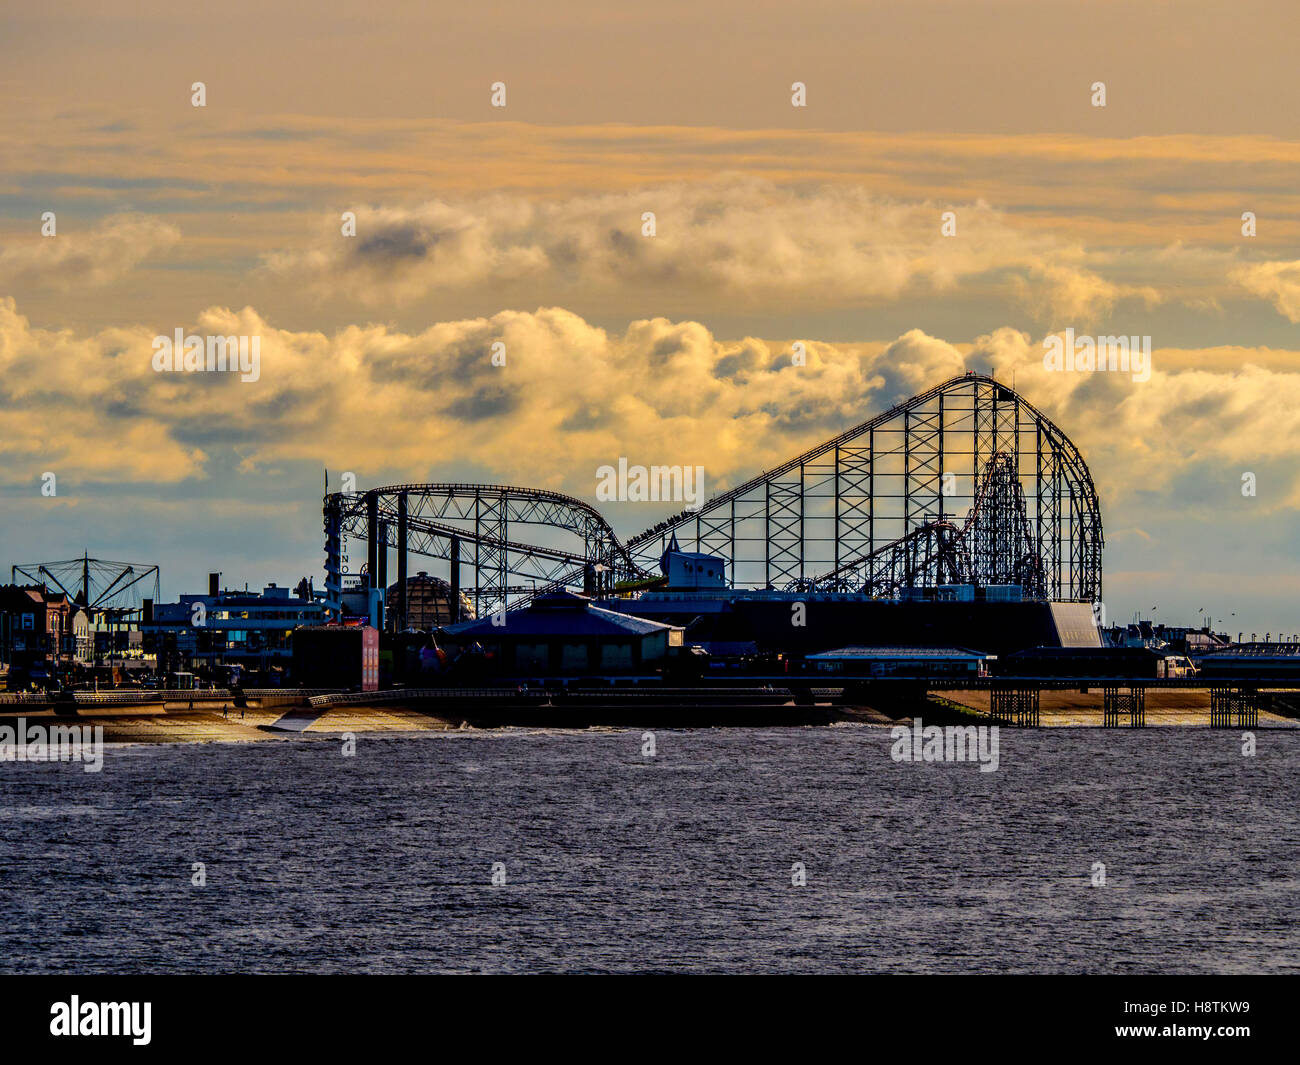 Big dipper, Pleasure Beach at sunset, Blackpool, Lancashire, UK. - Stock Image